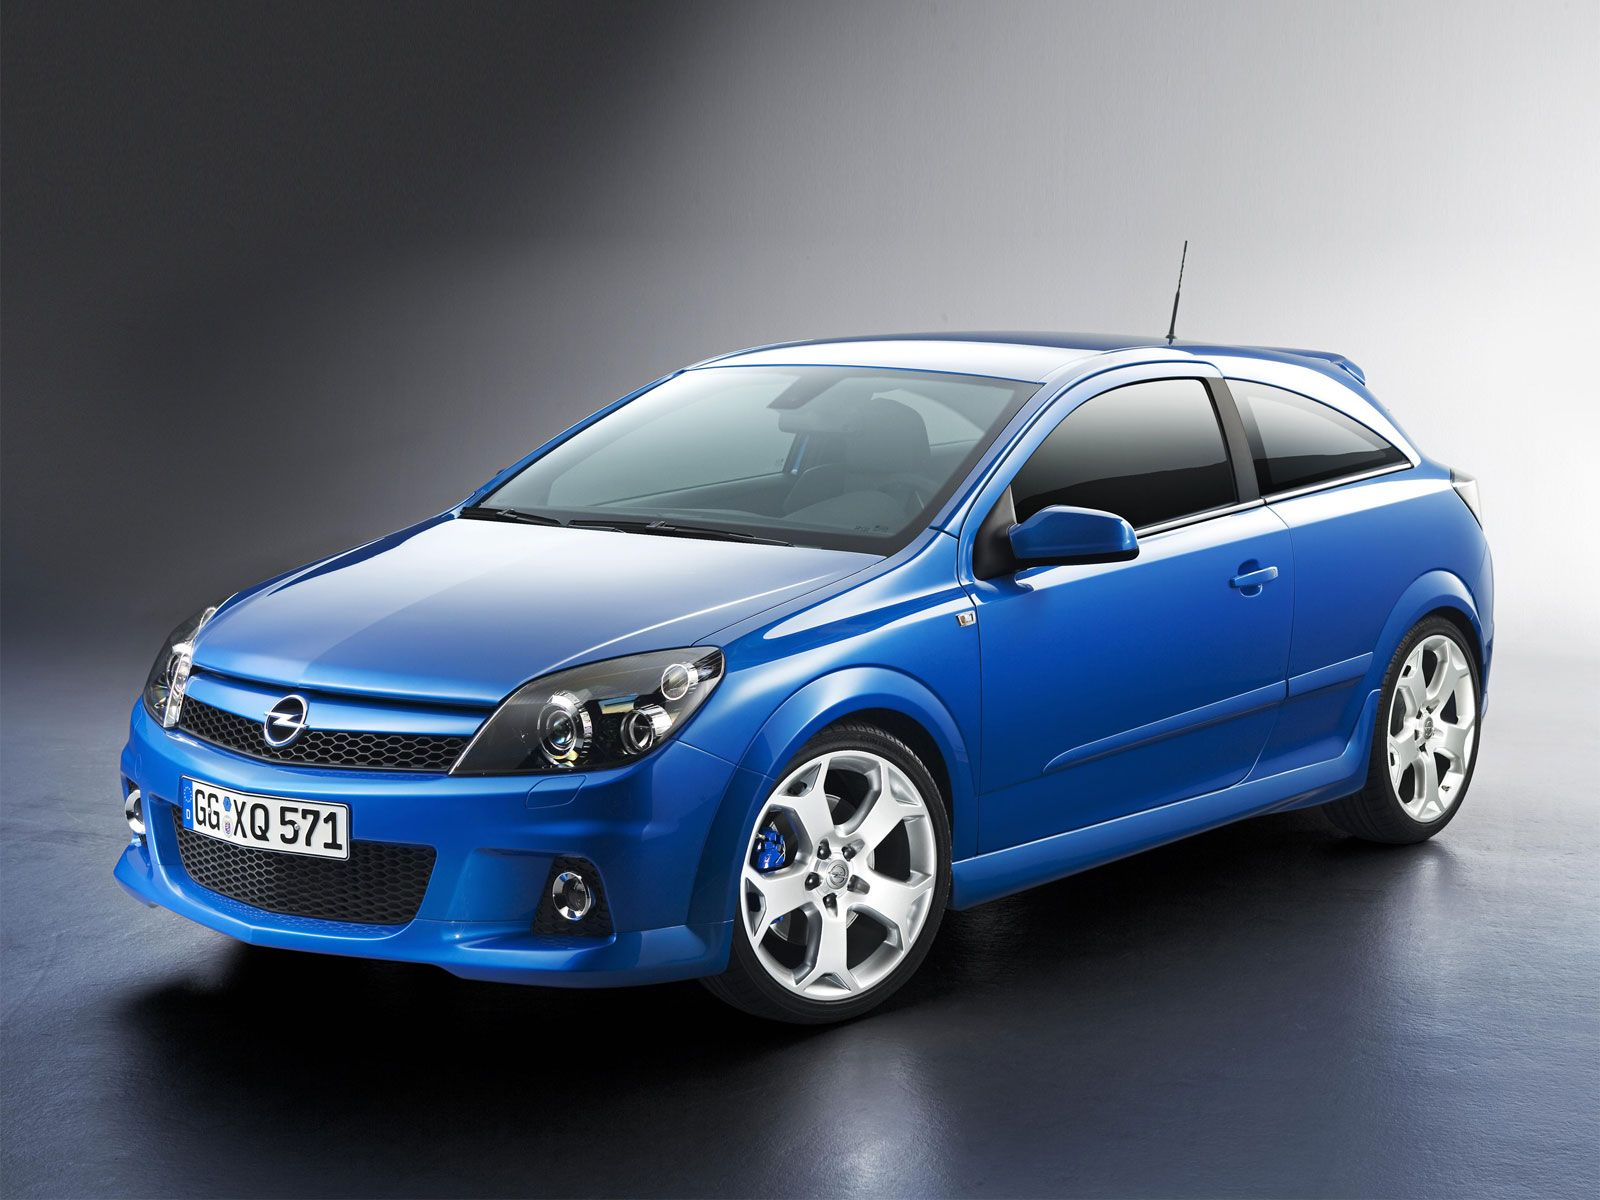 Opel astra h opc 2005 opel astra h opc 2005 photo 06 car in - Opel Astra J Opc Buzz Blue Things I Want Pinterest Planes And Cars